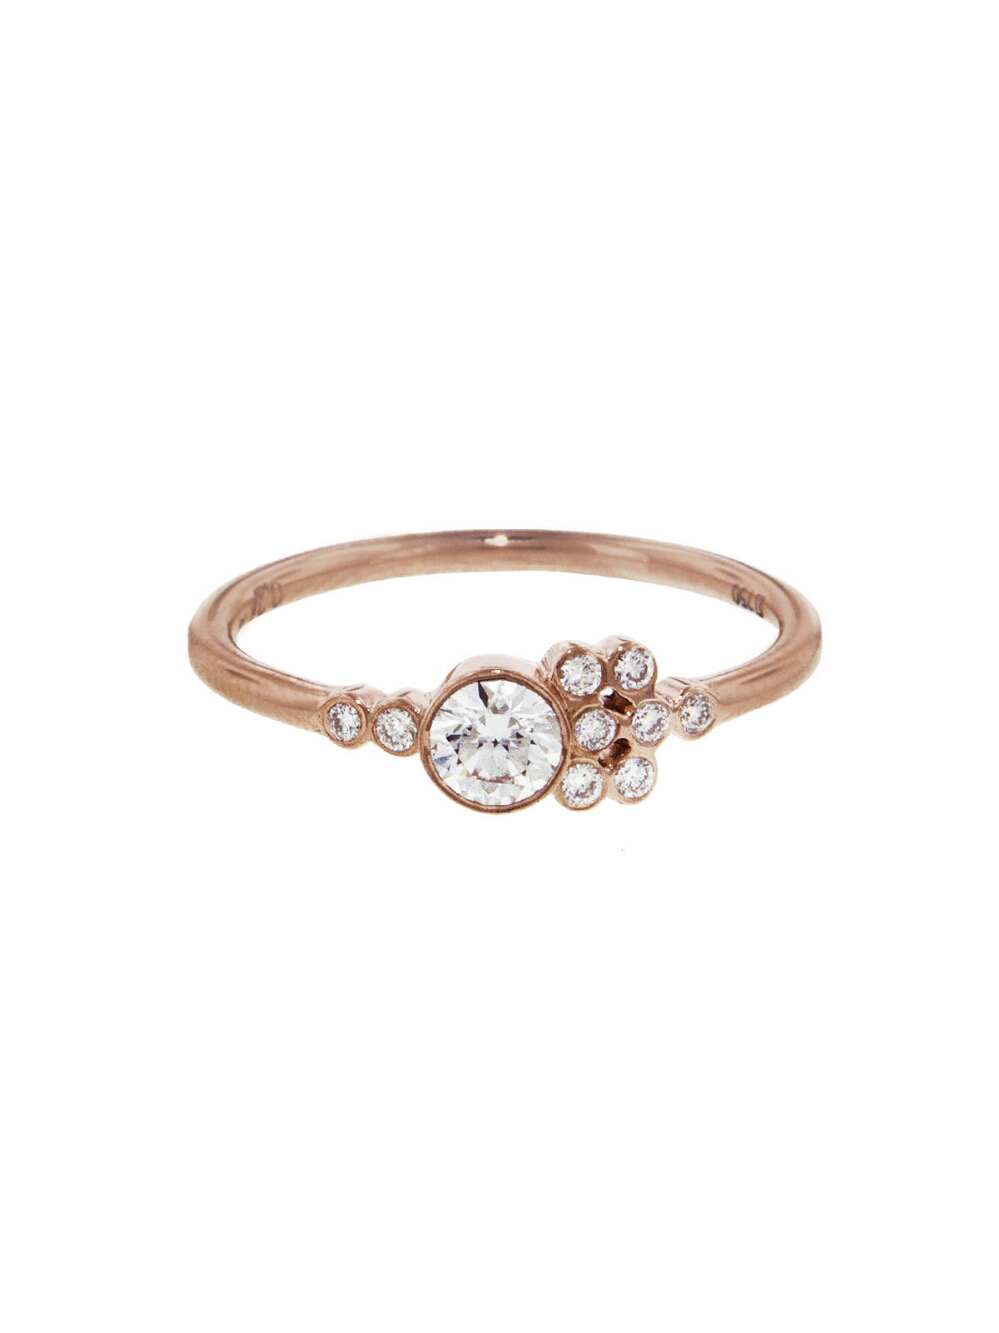 round cut ring rose gold band with asymmetrical diamond clusters